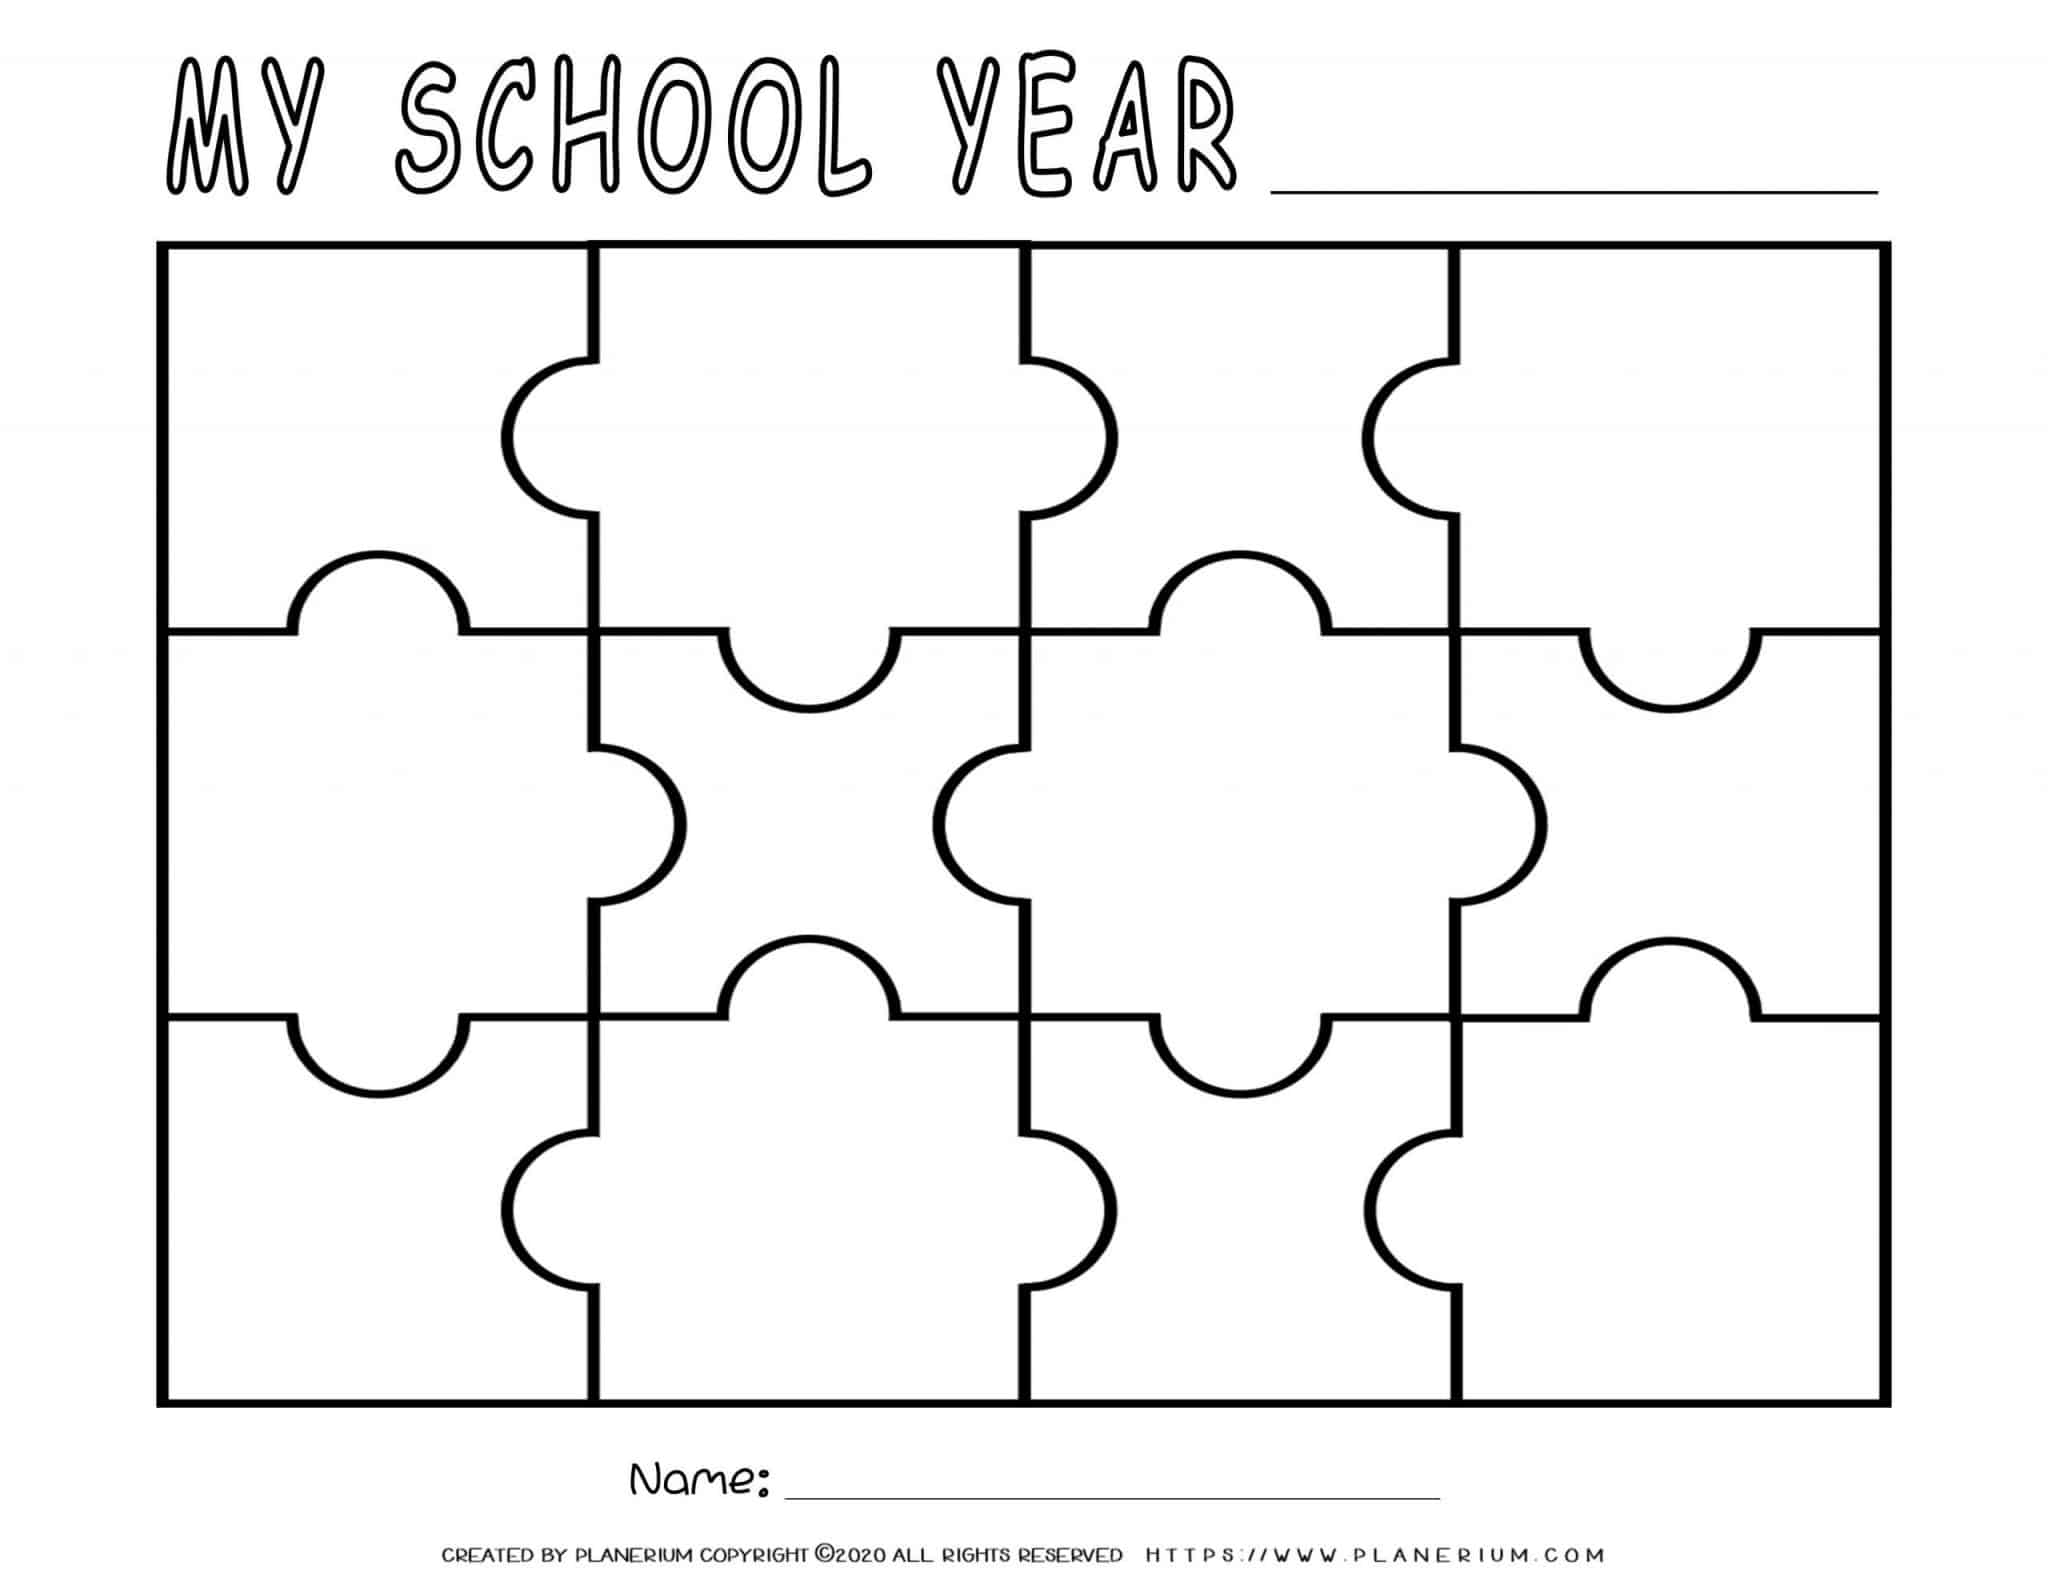 End of Year - Worksheet - School Year Review Puzzle